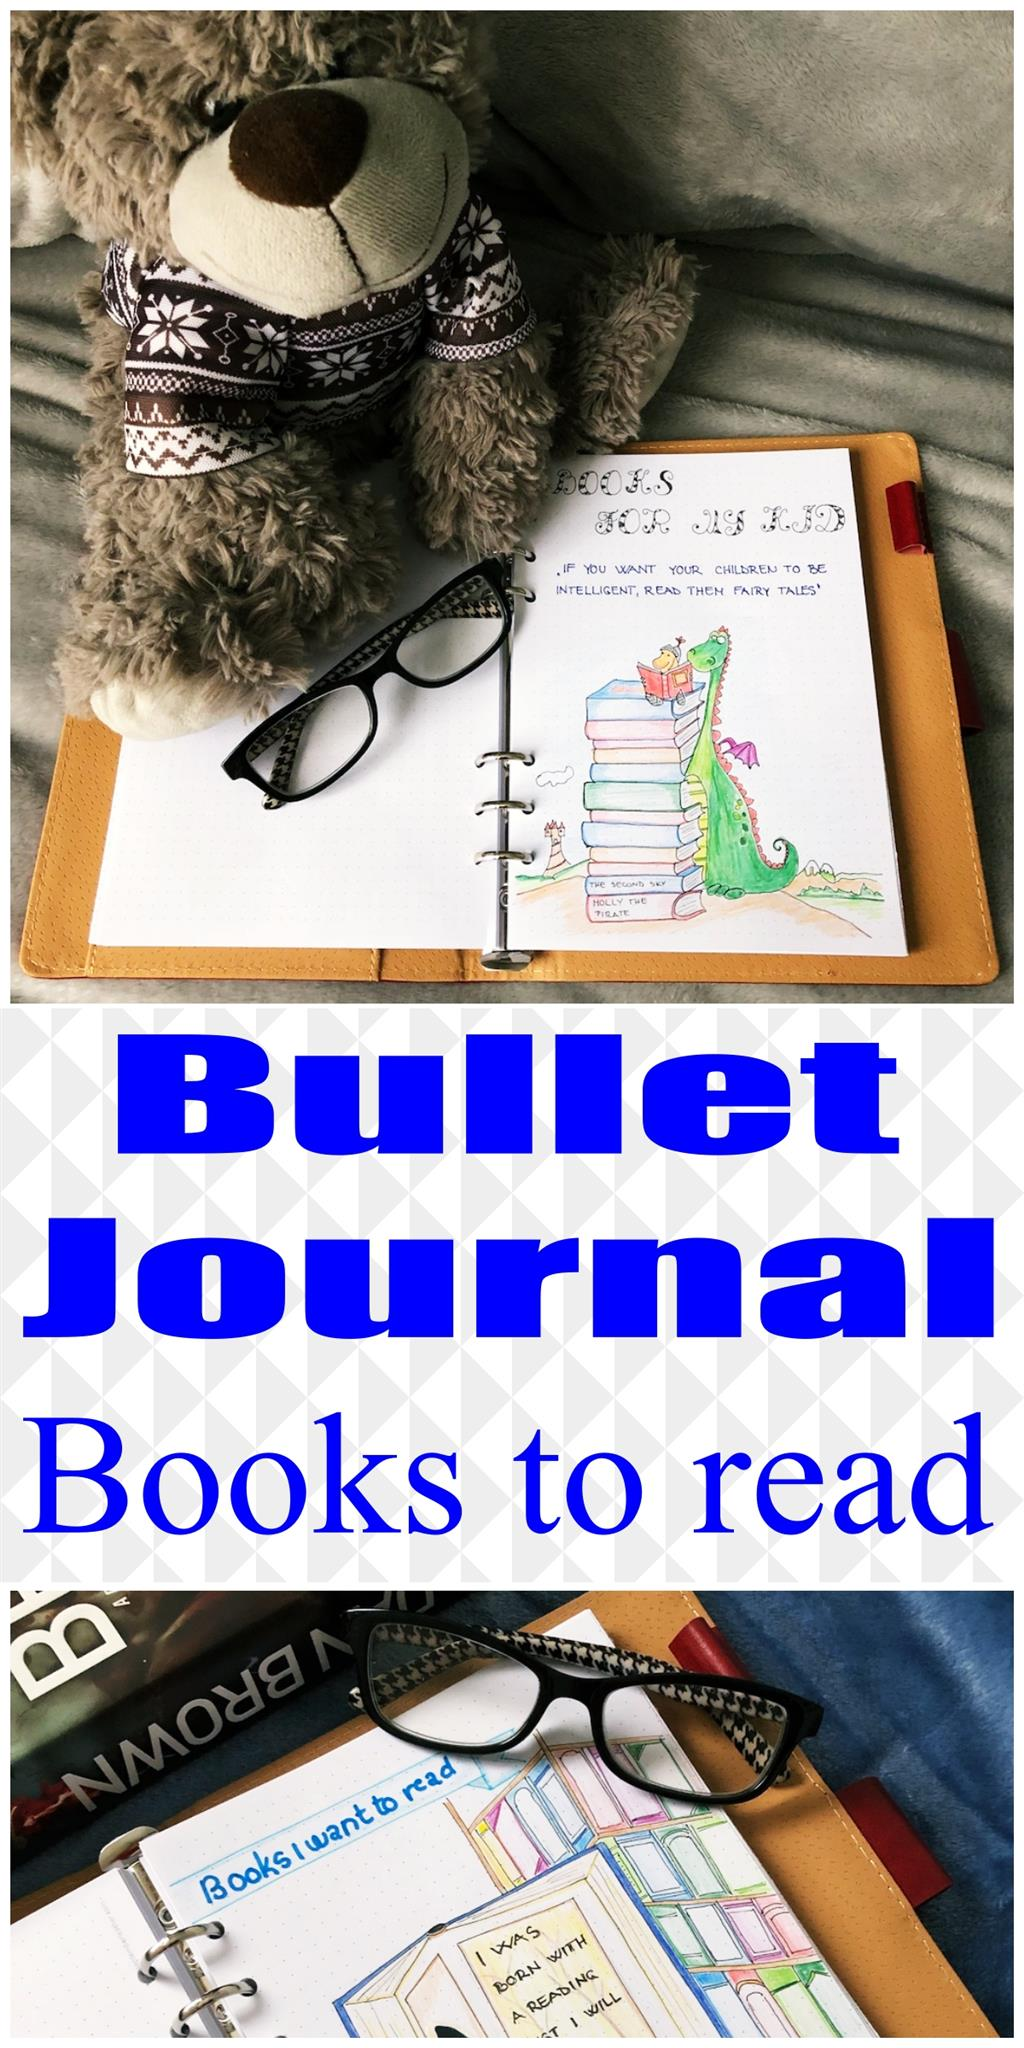 Bullet journal - Books to read - itstartswithacoffee.com #bulletjournal #booktoread #itstartswithacoffee.com